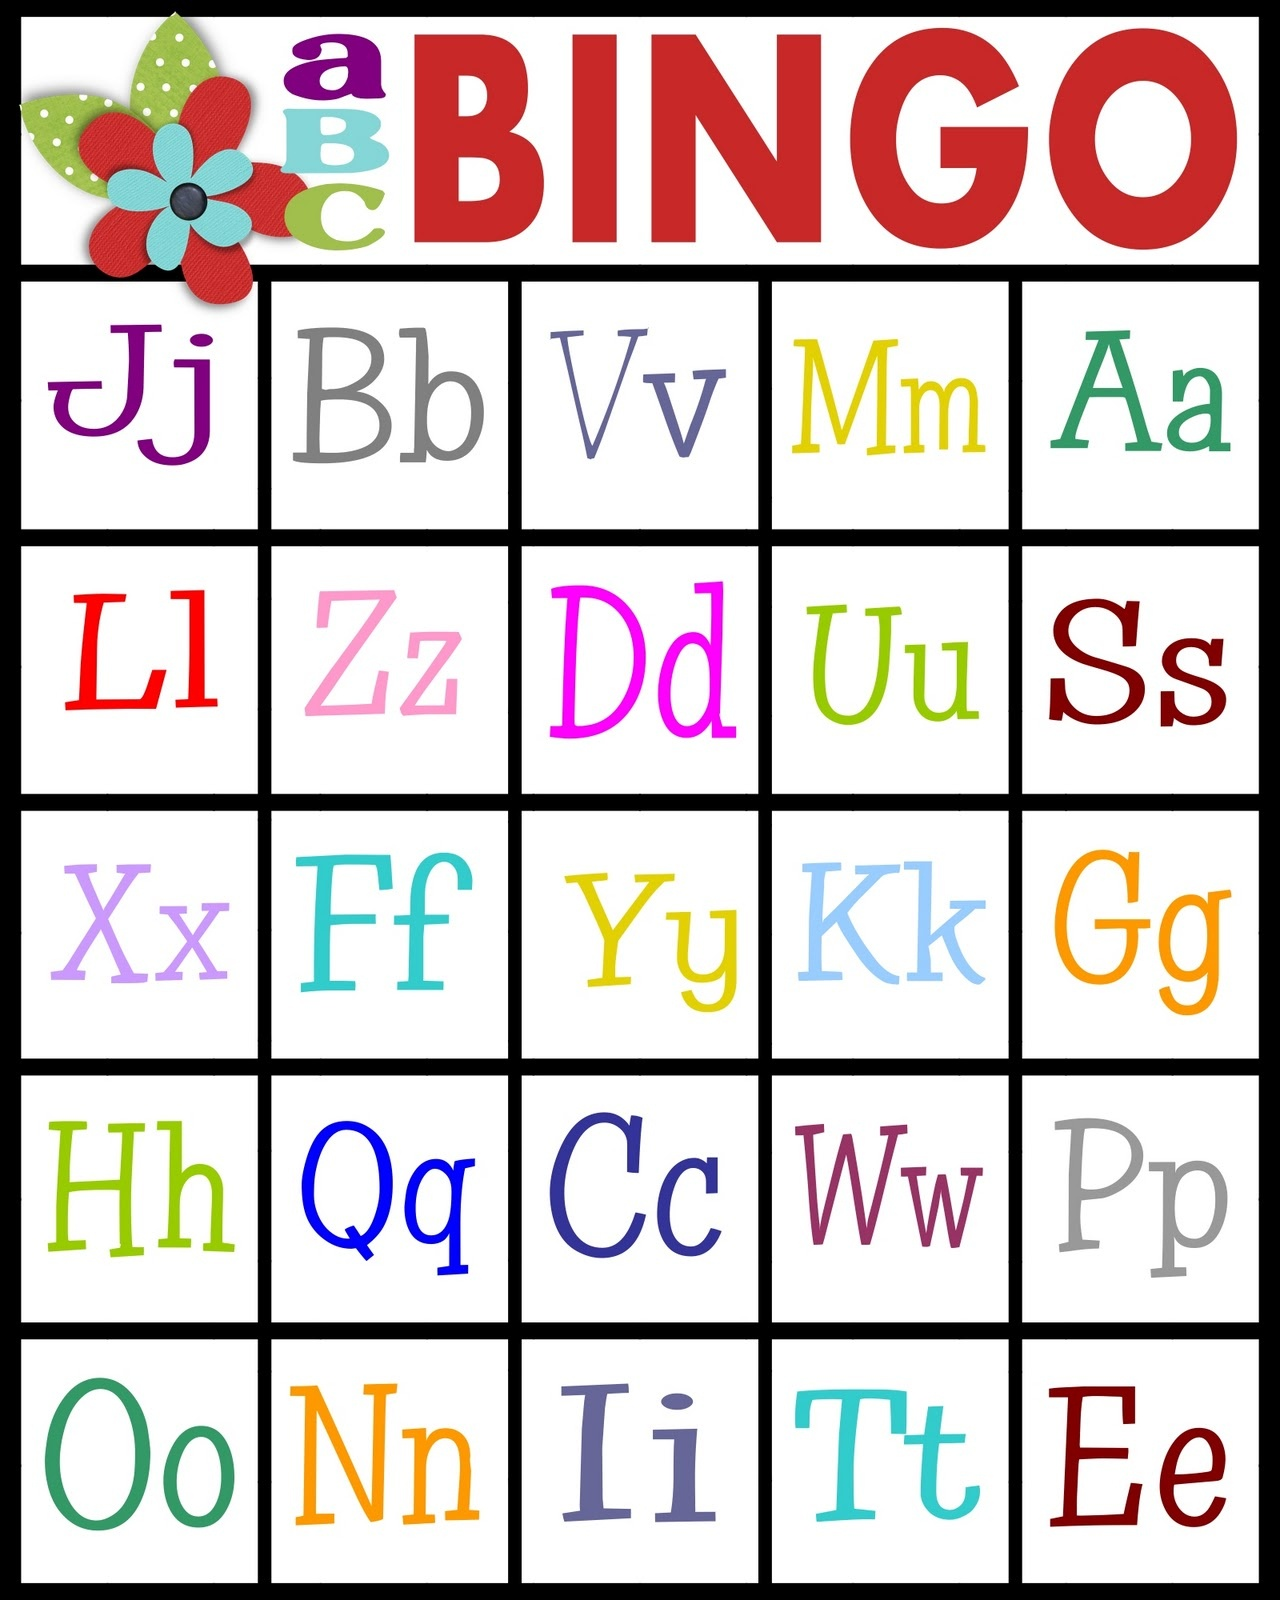 Abc's Bingo- Free Printable! - Sassy Sanctuary - Free Printable Alphabet Games